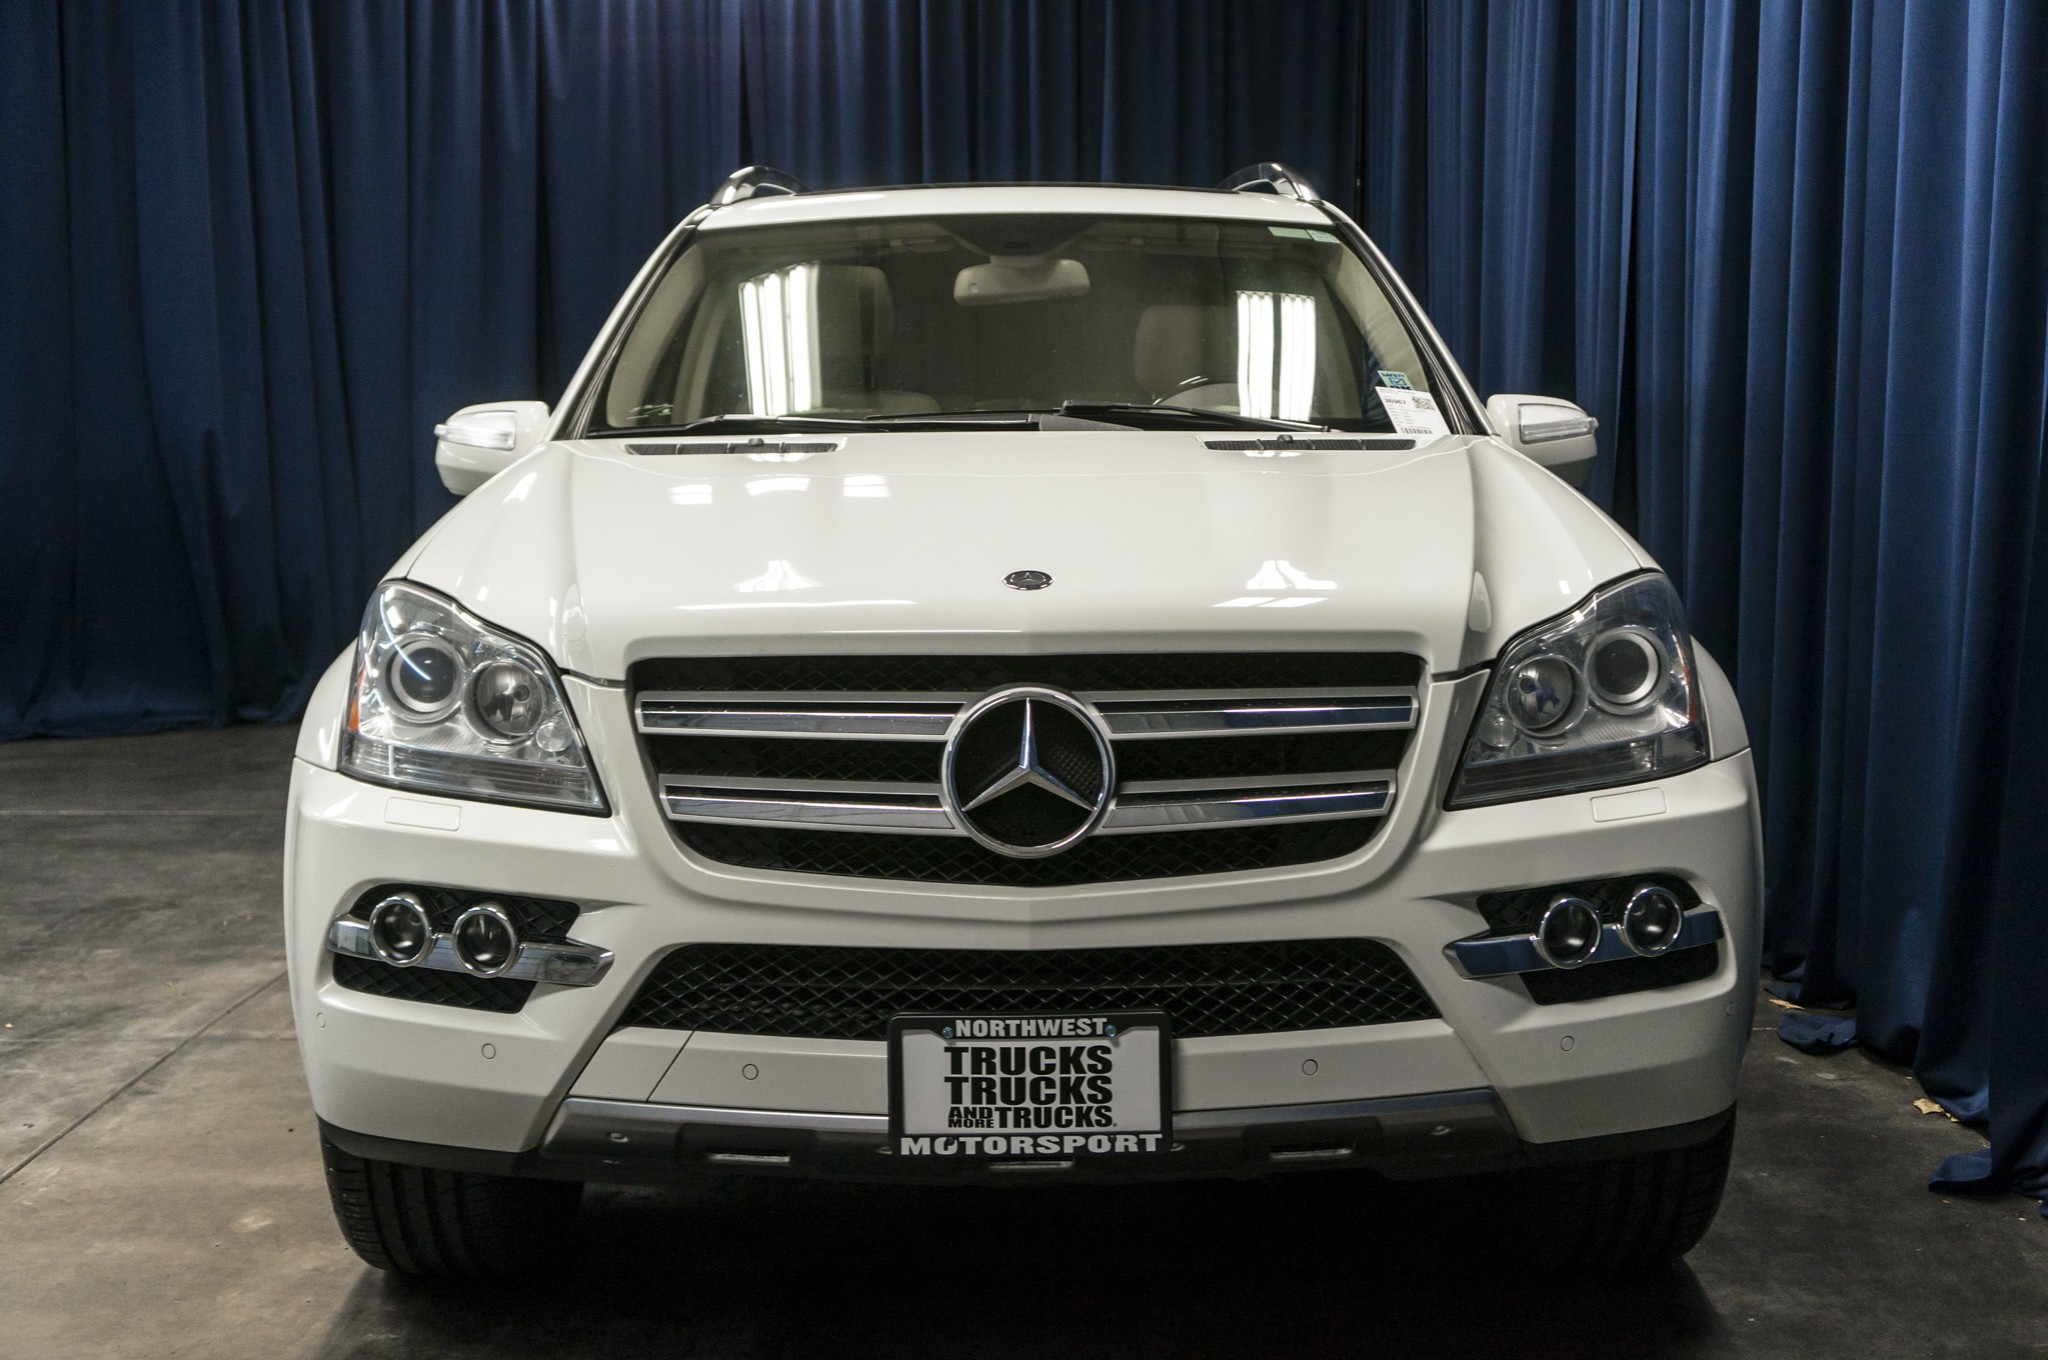 Used 2010 mercedes benz gl450 4matic awd suv for sale 36967 for Used mercedes benz gl450 4matic